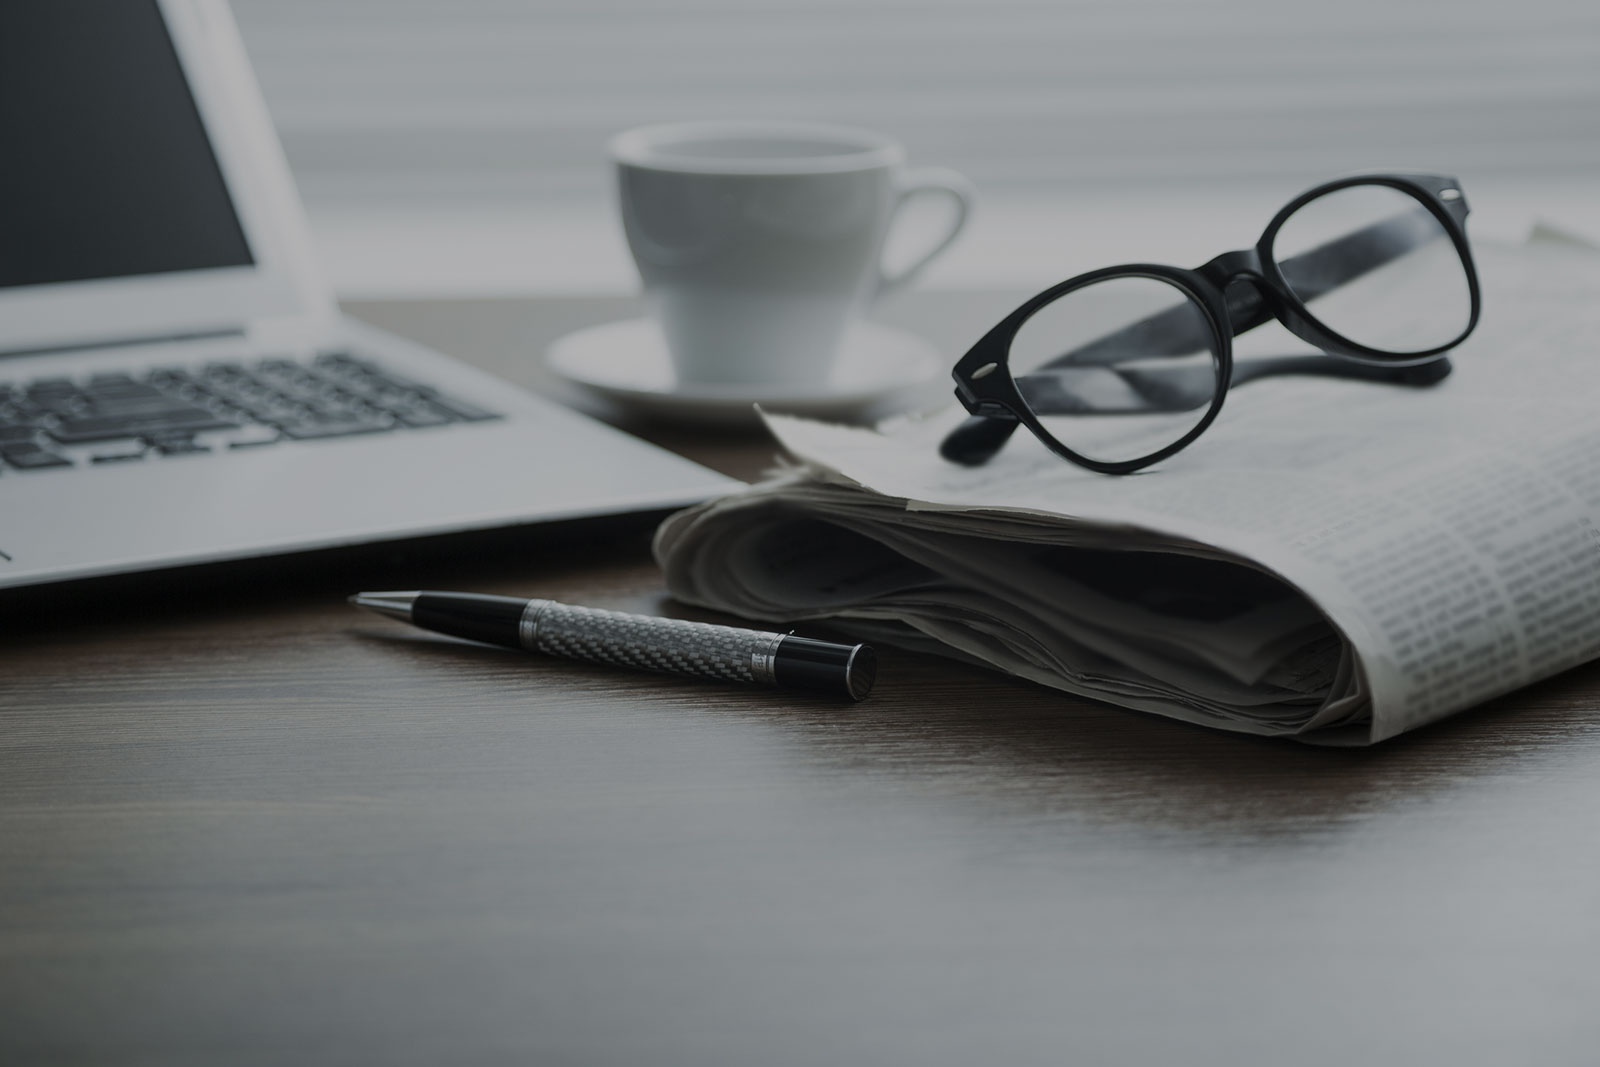 News & Publications Header Background - Desk with Laptop, Coffee, Glasses and Newspaper